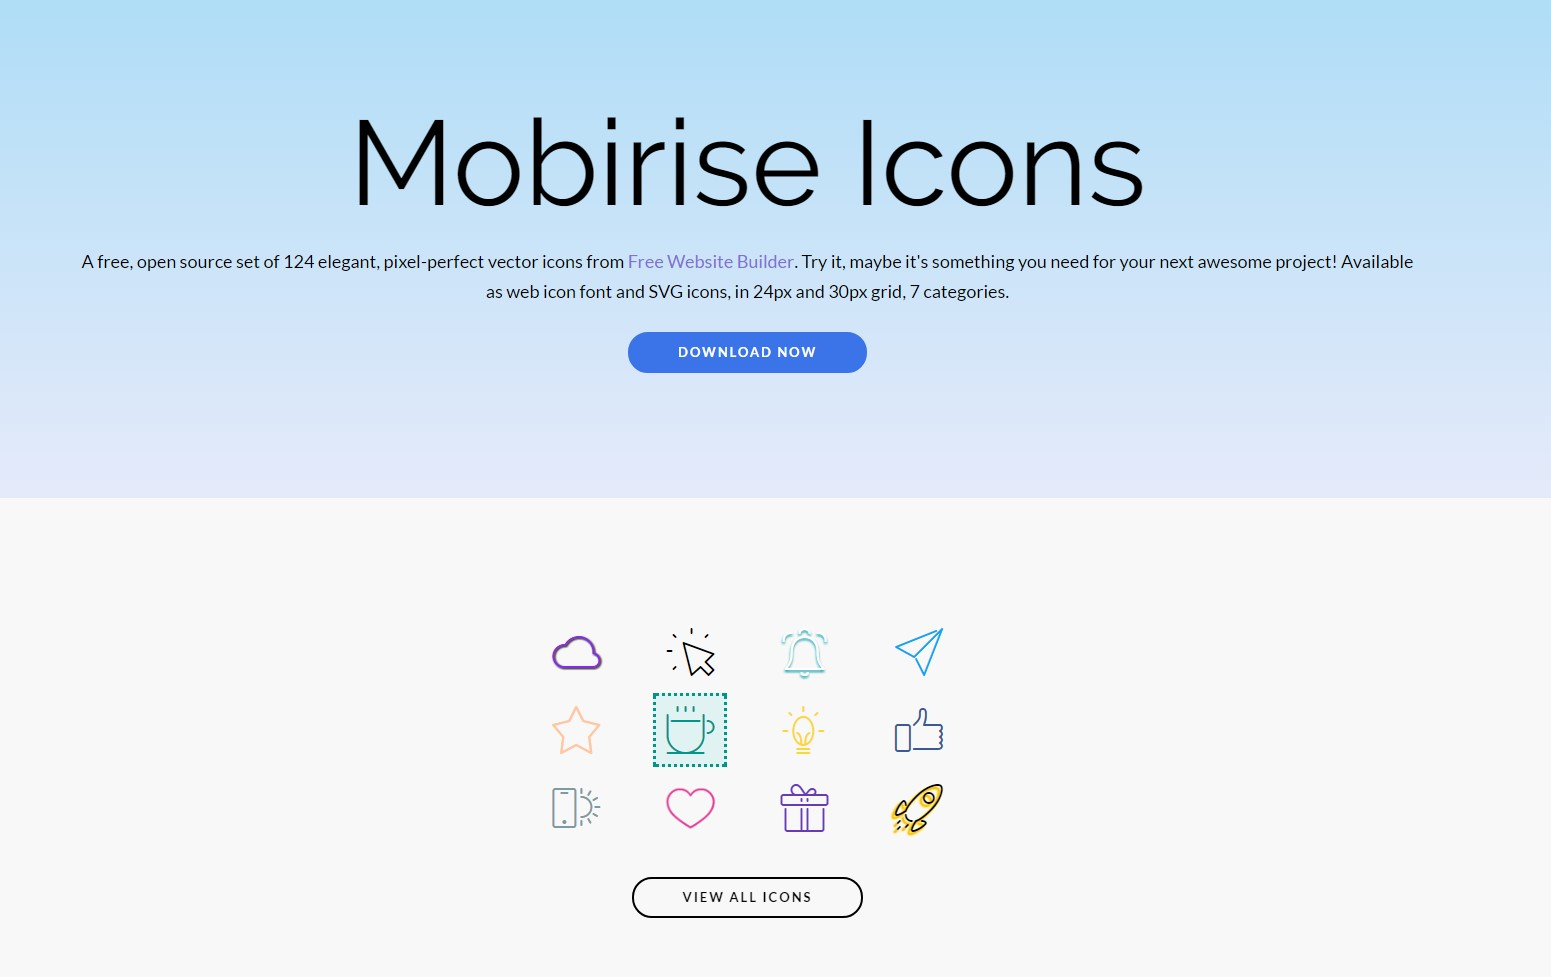 mobirise icons collection